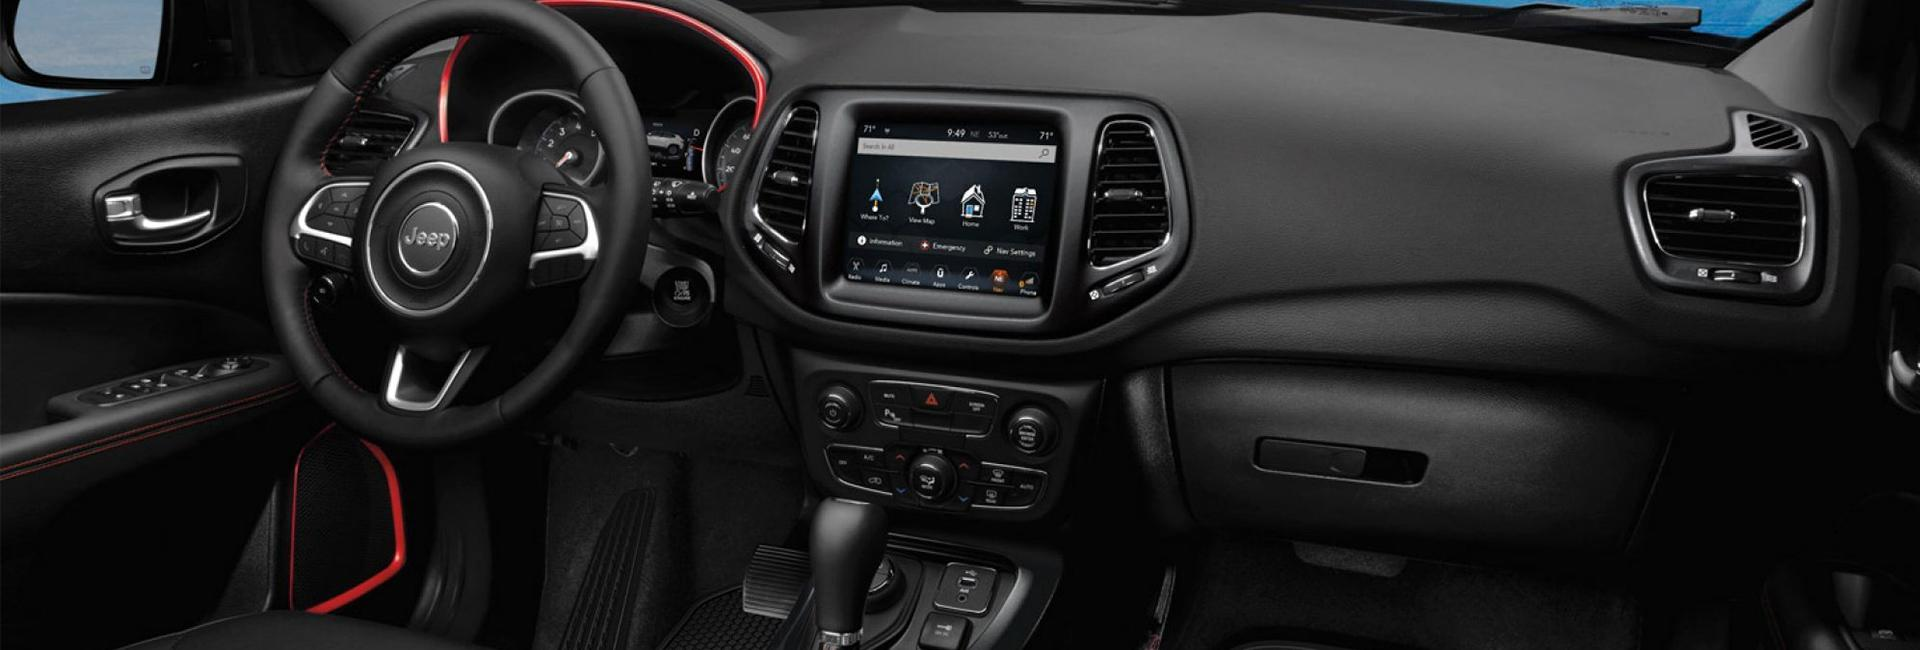 Interior image of the 2020 Jeep Compass for sale at Spitzer Jeep dealer in Mansfield Ohio